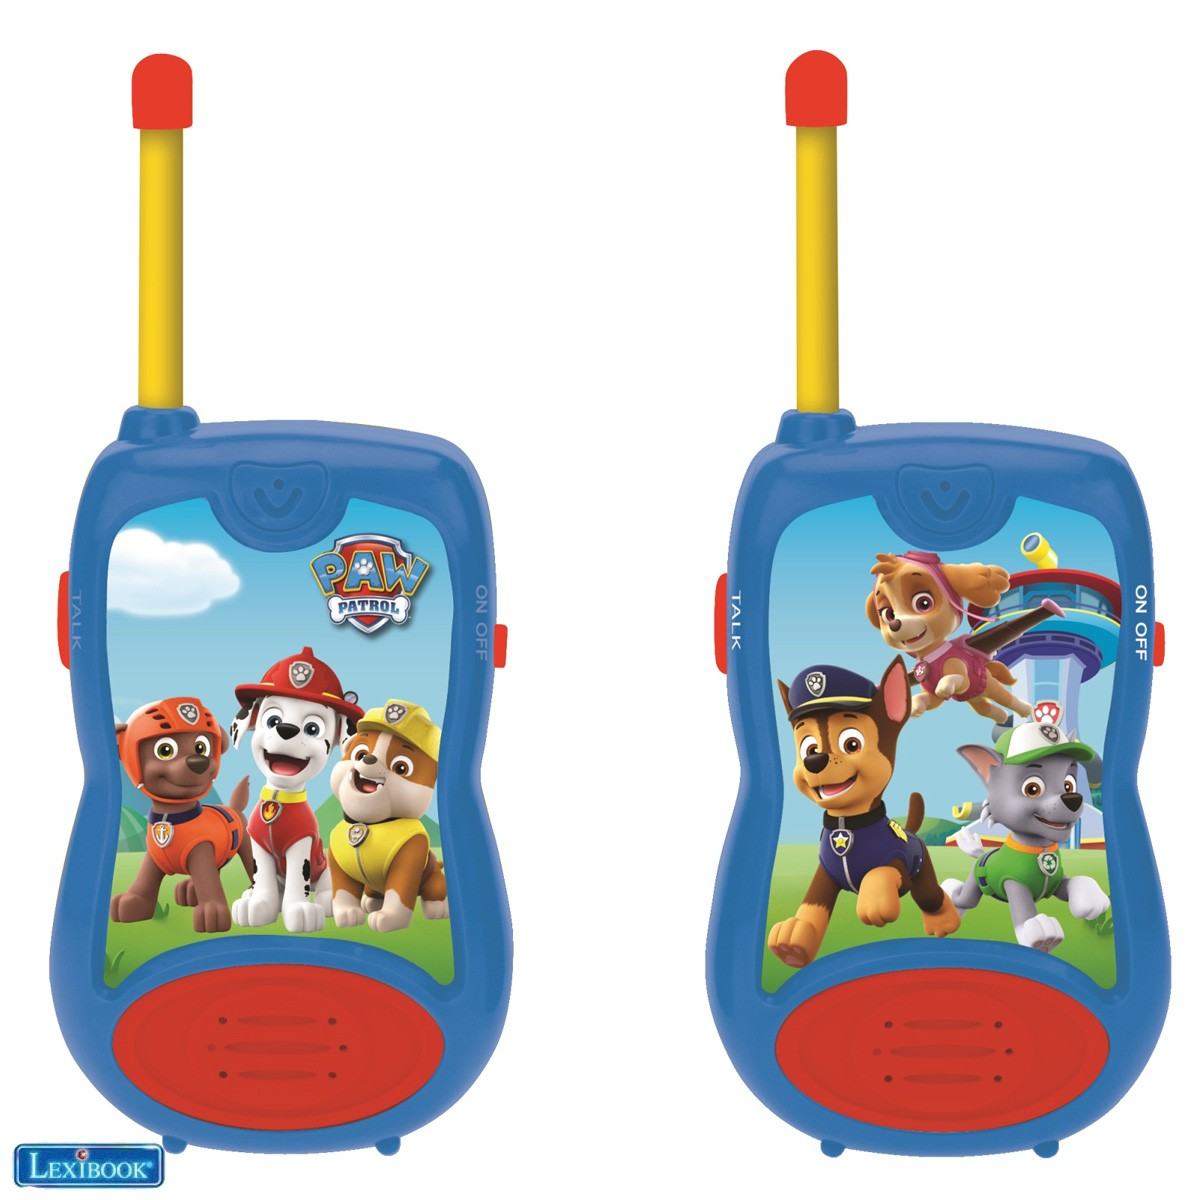 Walkie-talkies La Patrulla Canina